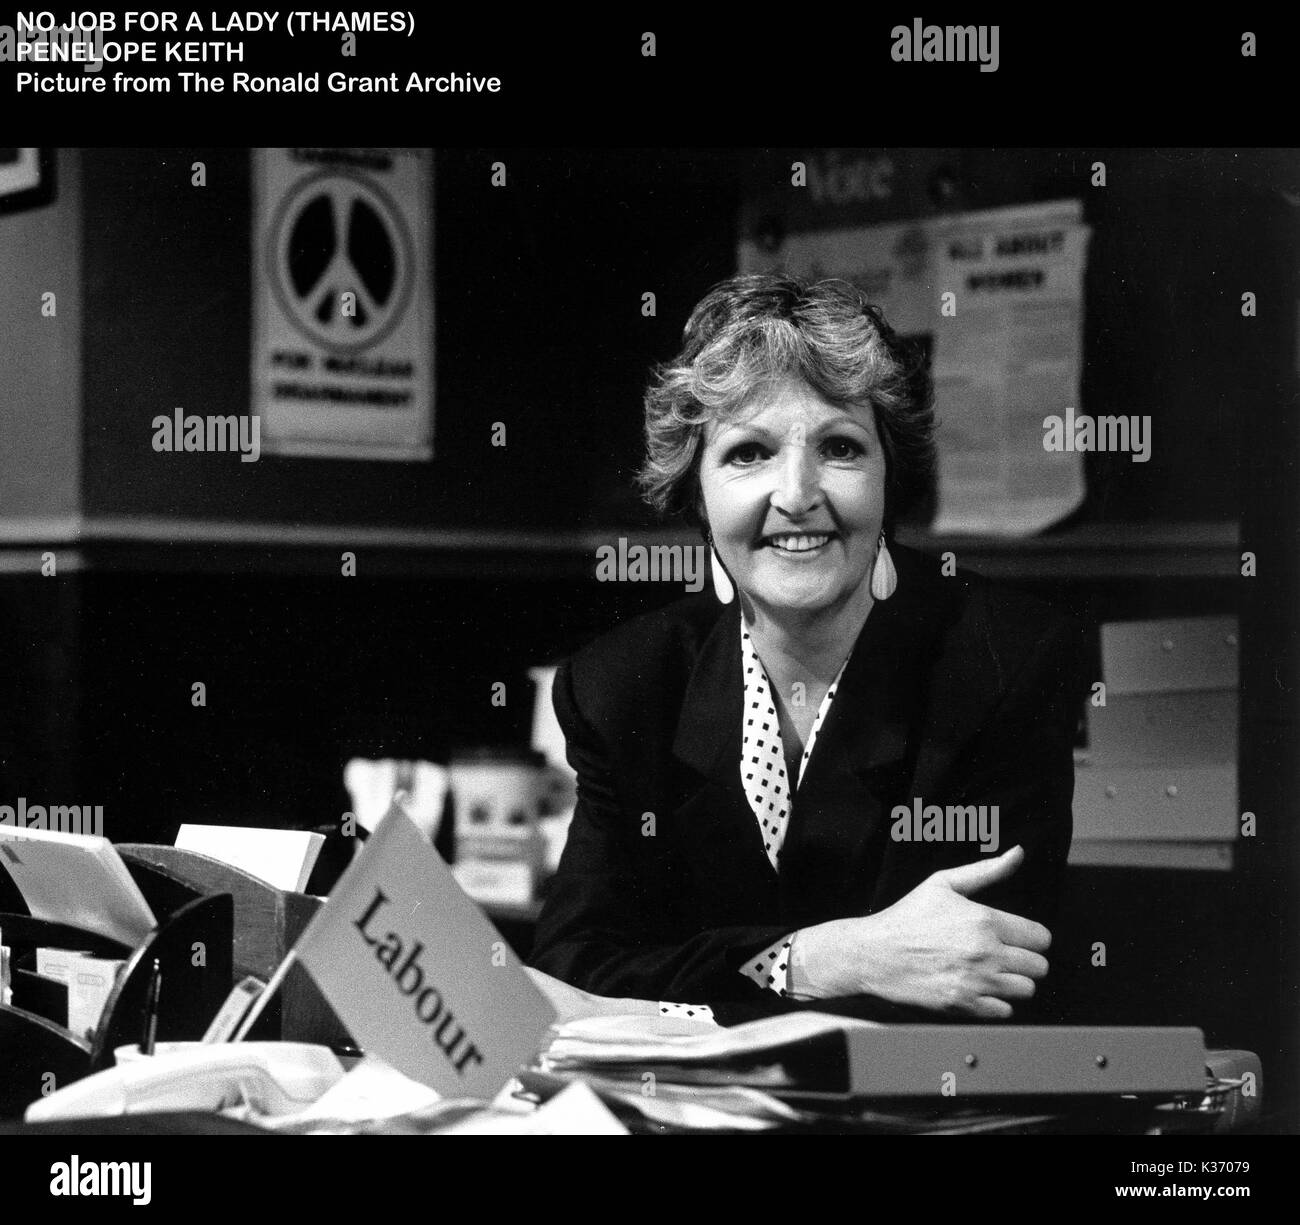 NO JOB FOR A LADY  PENELOPE KEITH - Stock Image